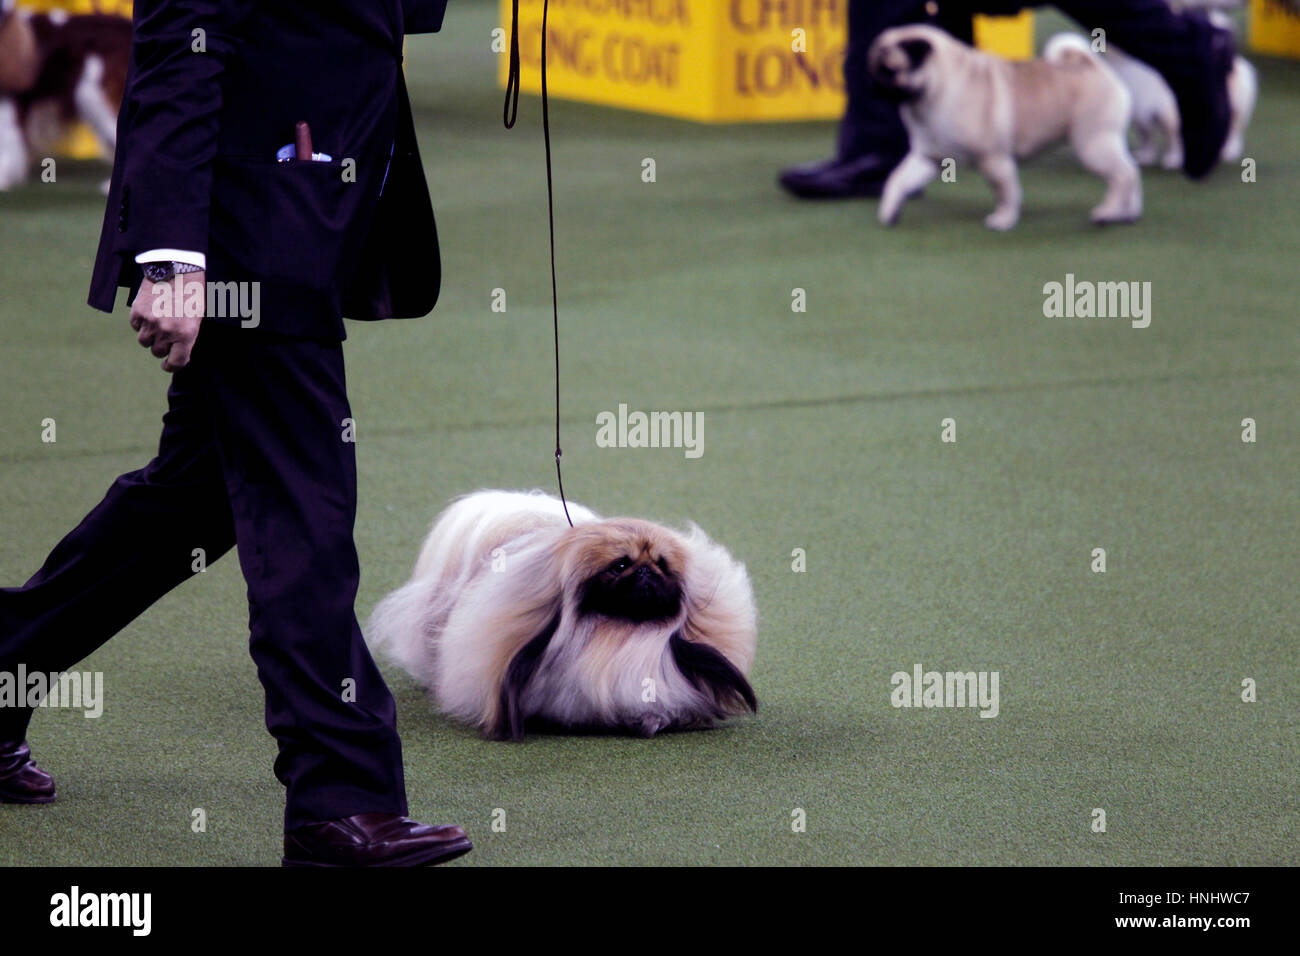 New York City, 13th February 2017. 'Chuckie' a Pekingese who won the Toy Division at the 141st Annual Westminster - Stock Image